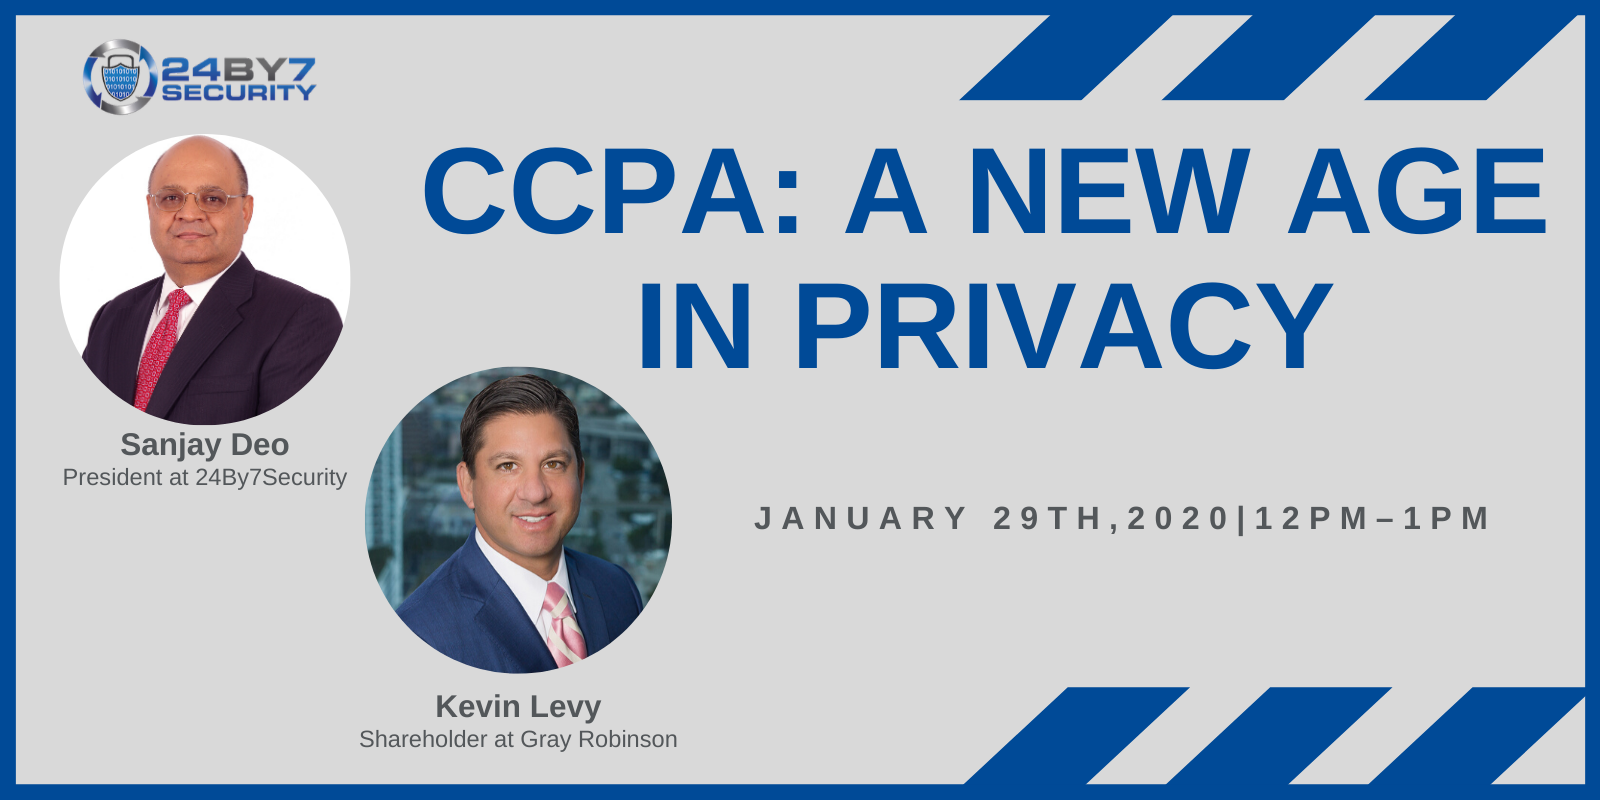 offers.24by7security.comhubfsCCPA_ A New Age In Privacy,WEB-1